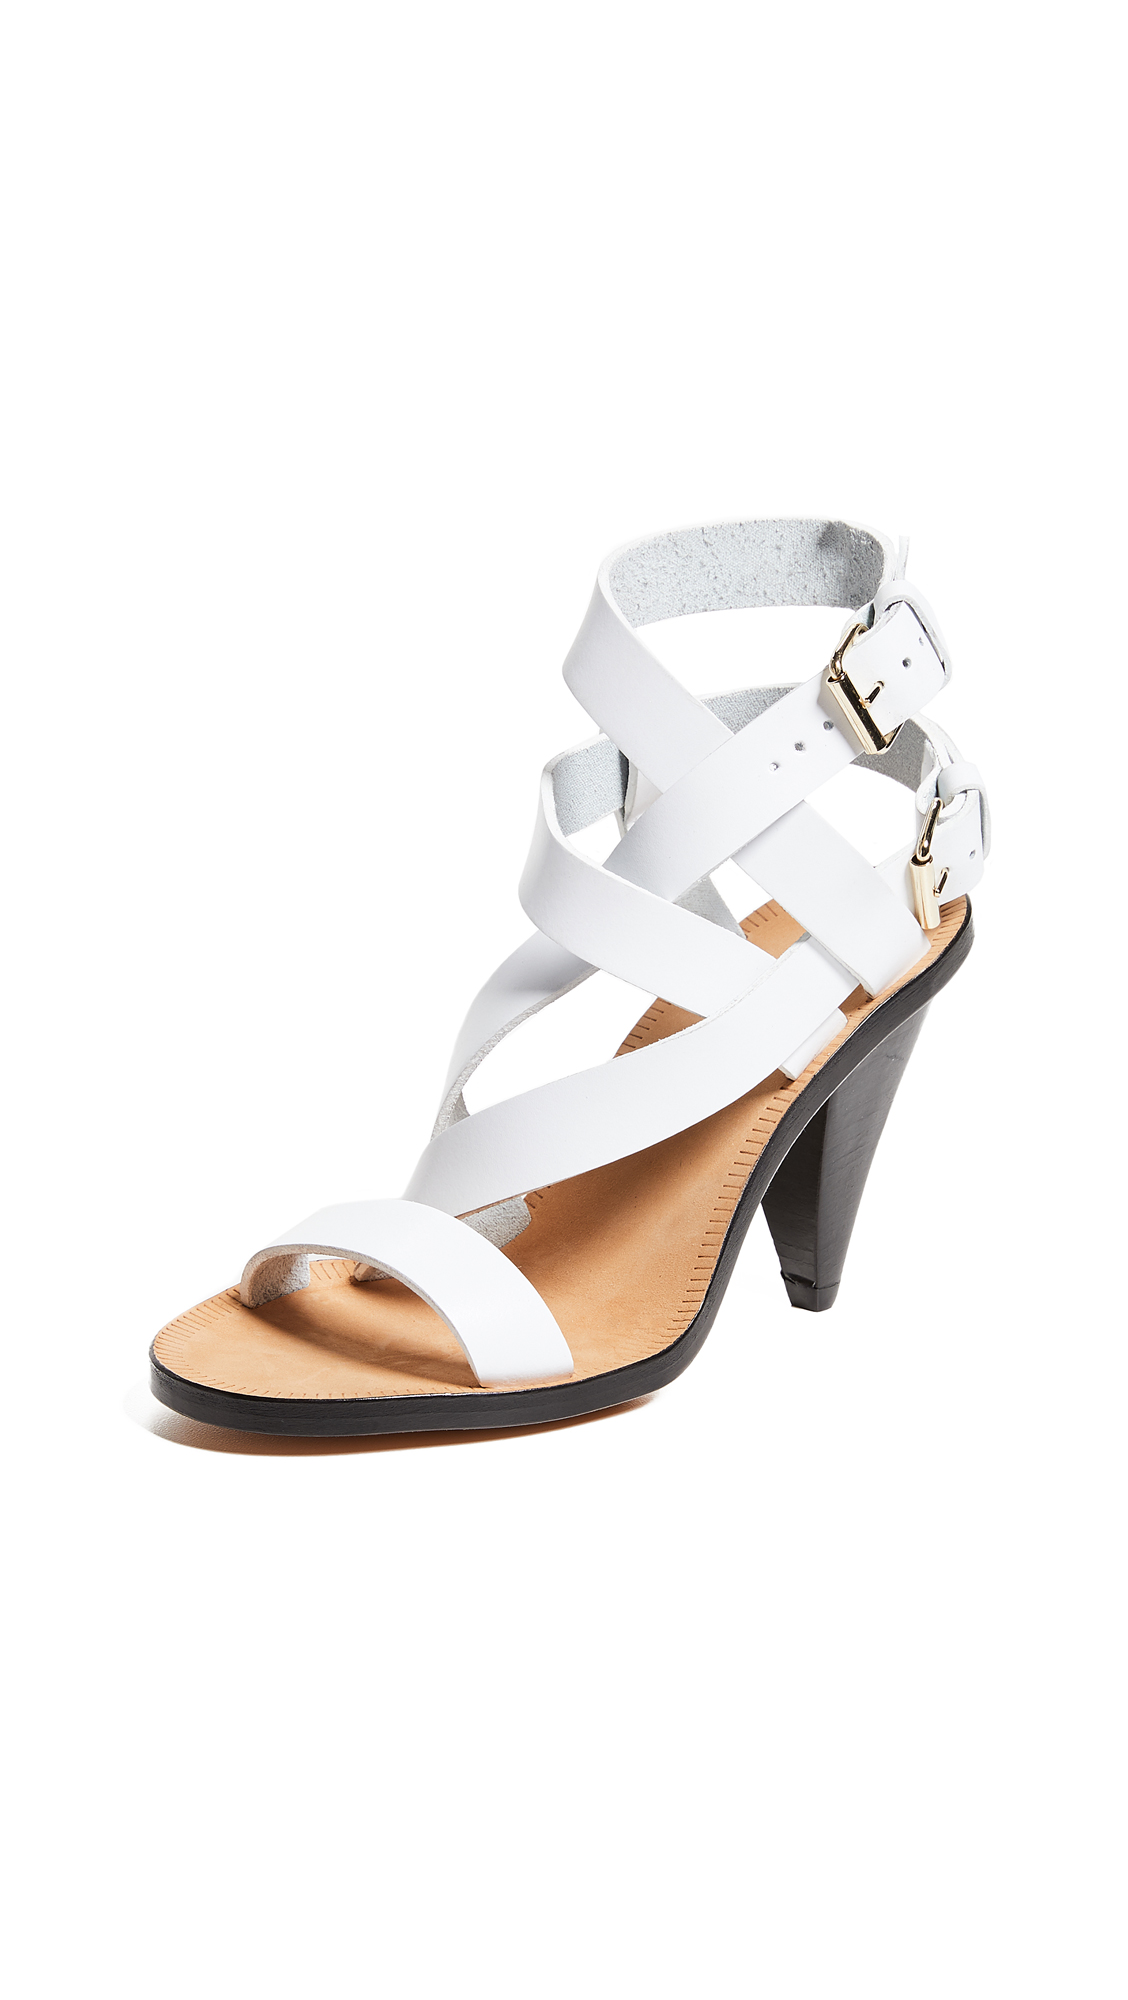 IRO Riara High Heel Sandals - White